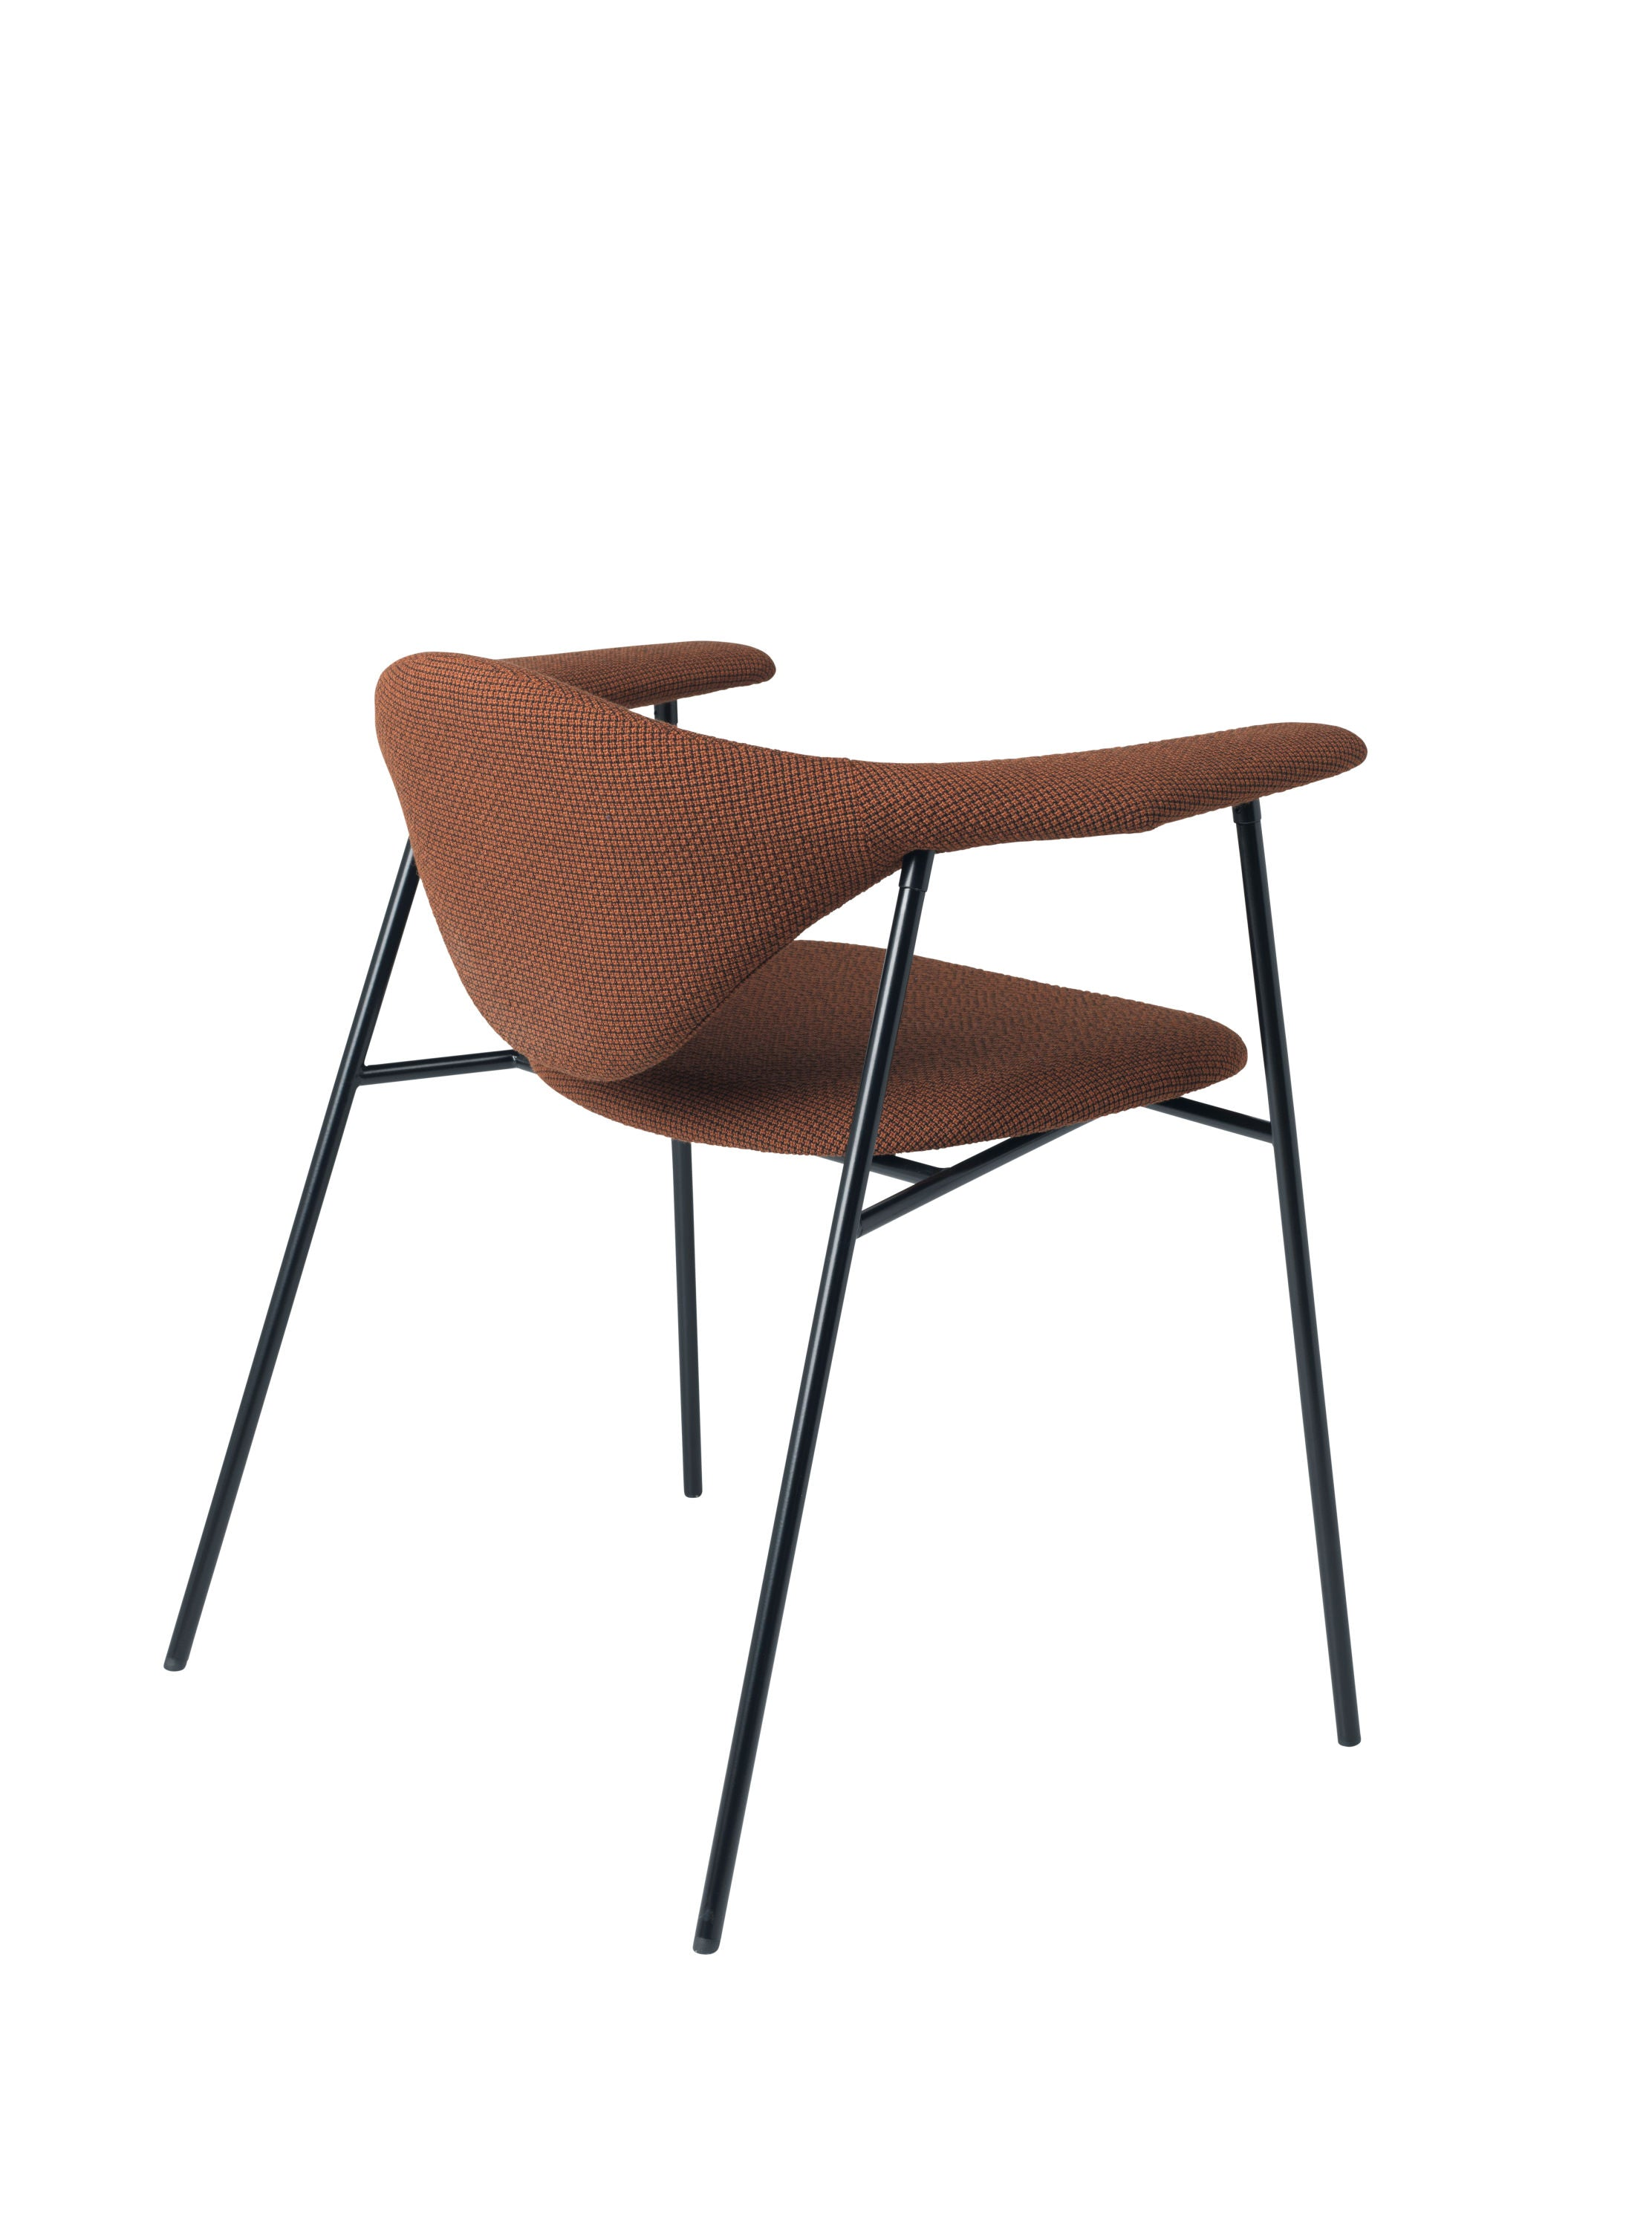 Masculo Dining Chair -  Fully Upholstered - Black base, Colline 568 fra GUBI